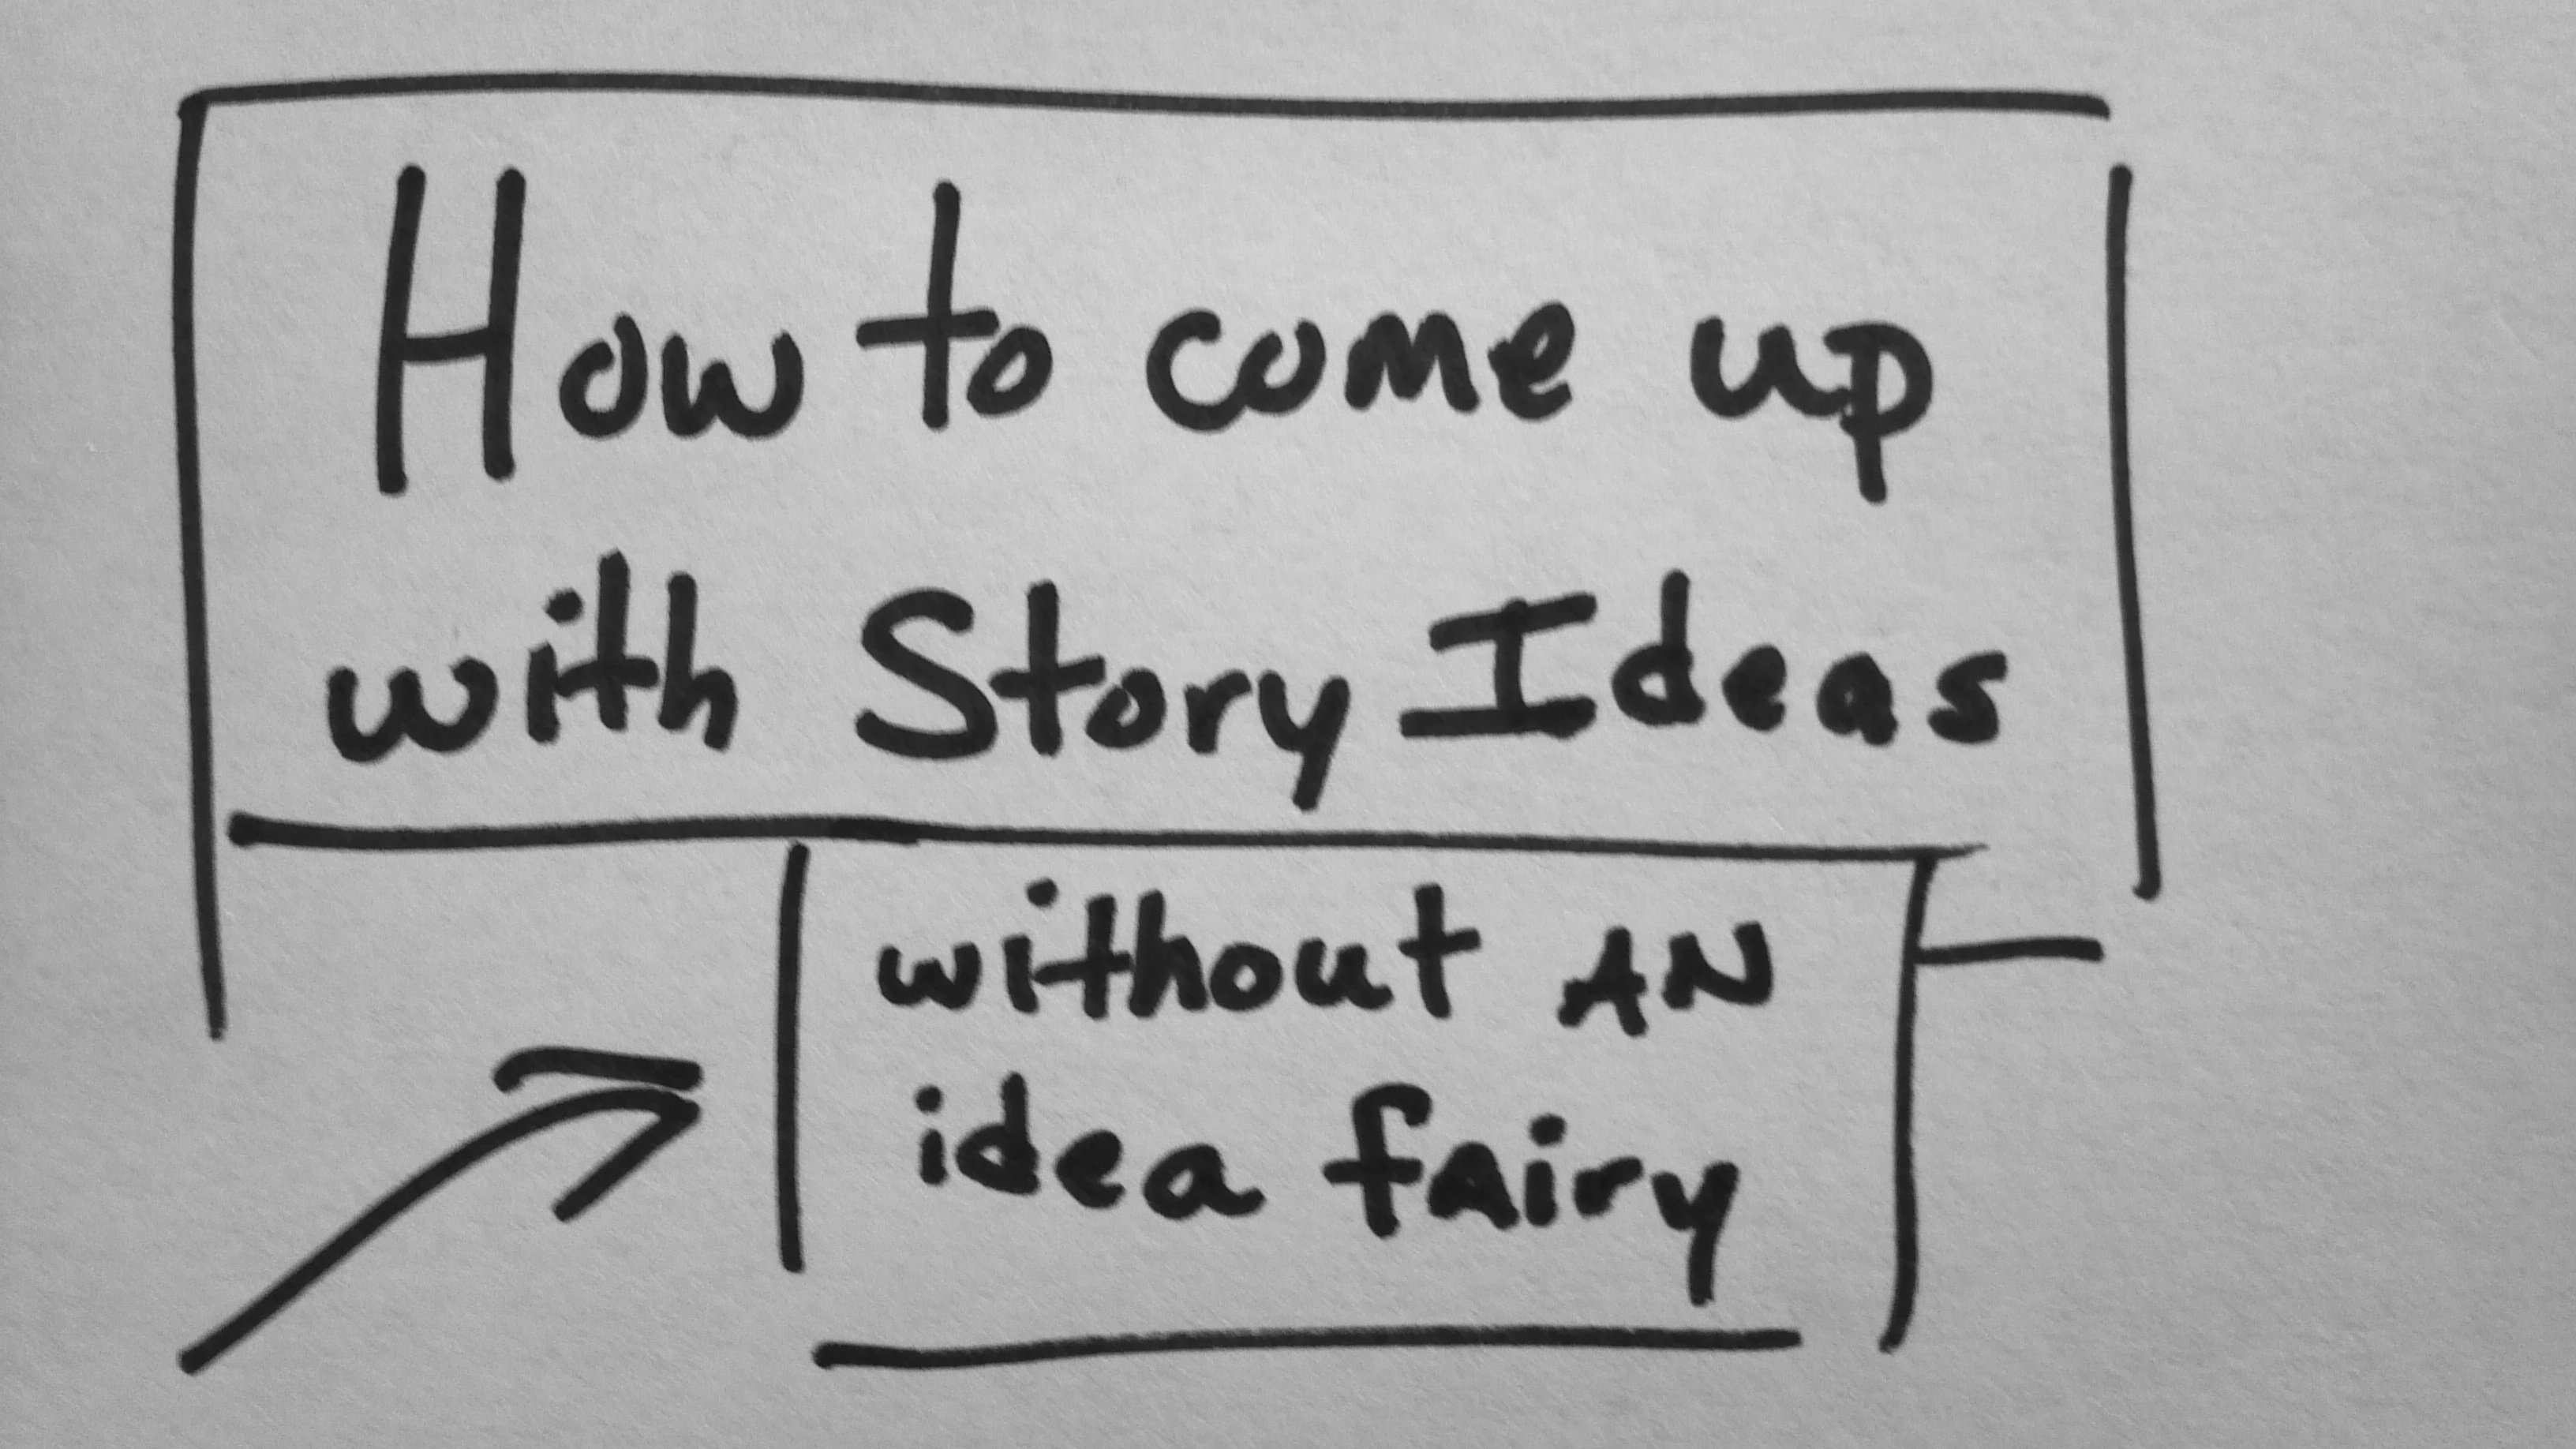 10 Stunning Coming Up With Story Ideas story planning how to come up with story ideas 2021